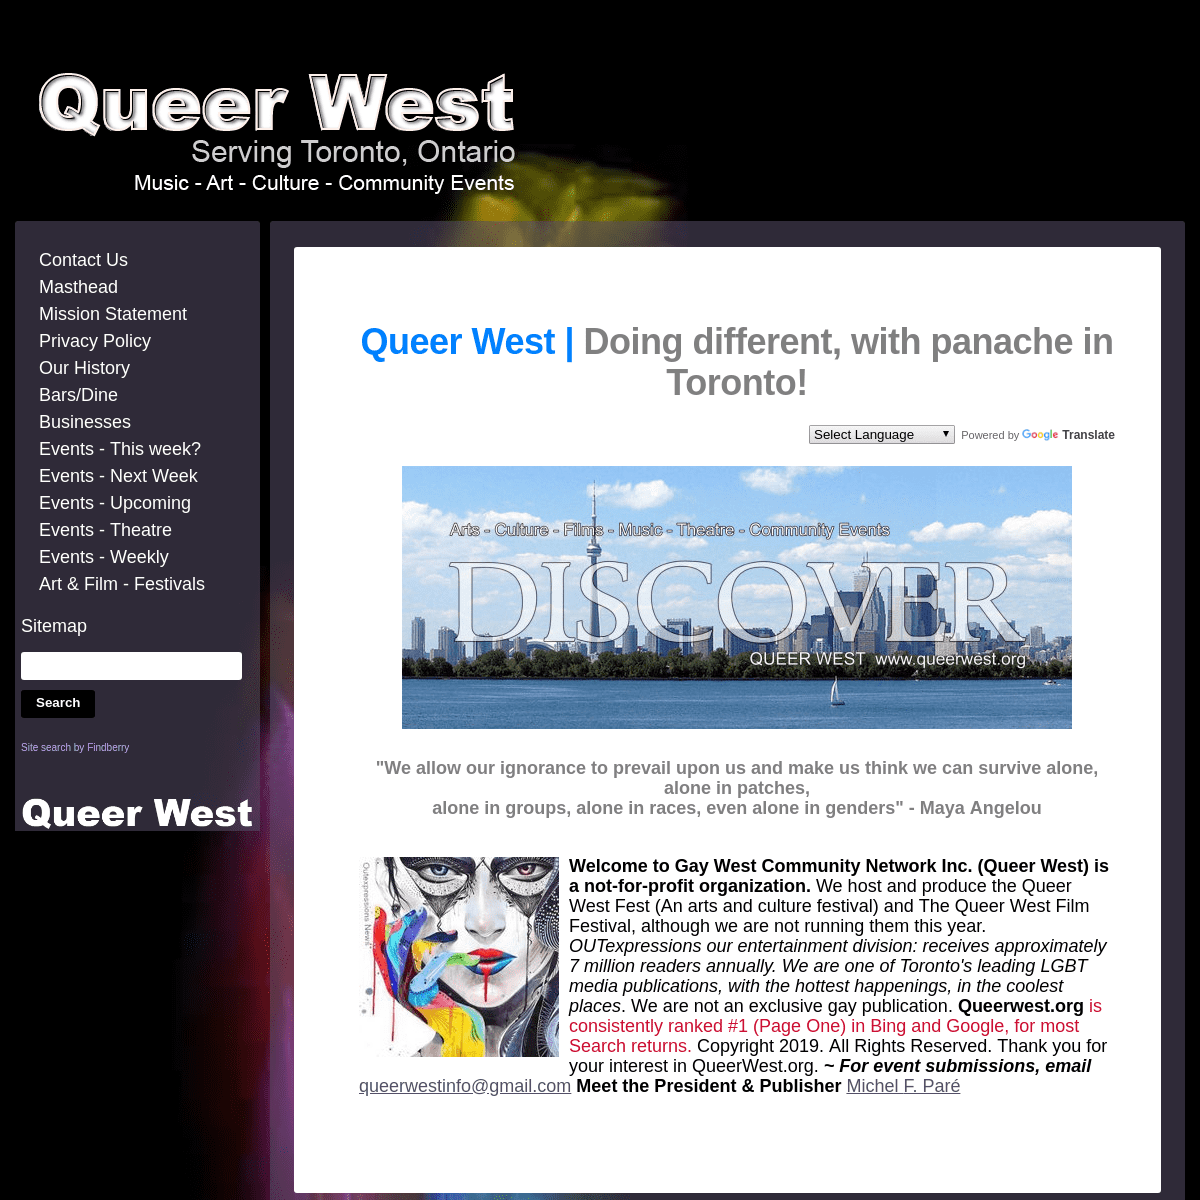 Queer West - Doing different with panache in Toronto!